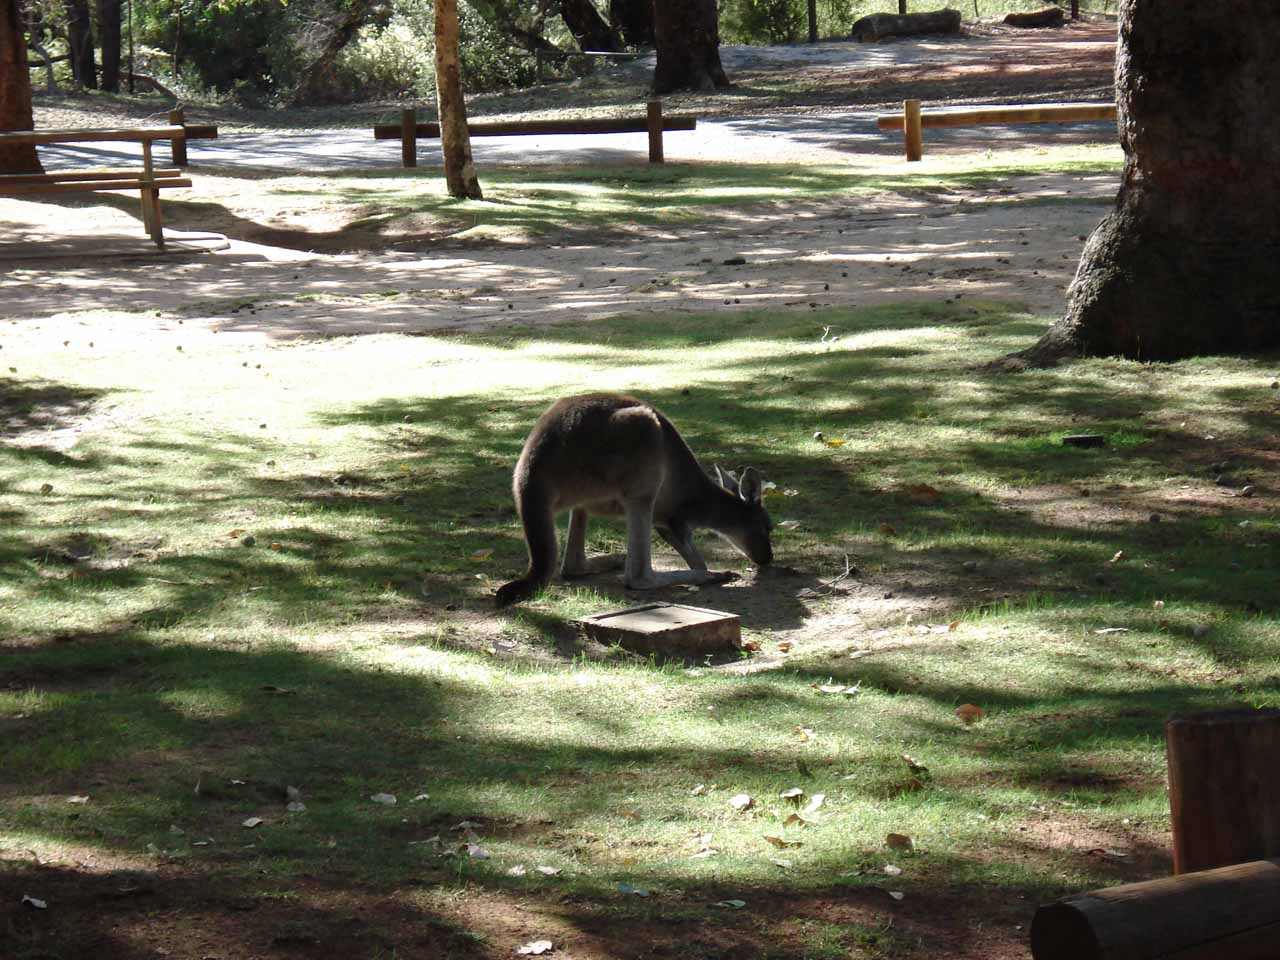 A kangaroo grazing at the Serpentine Falls car park